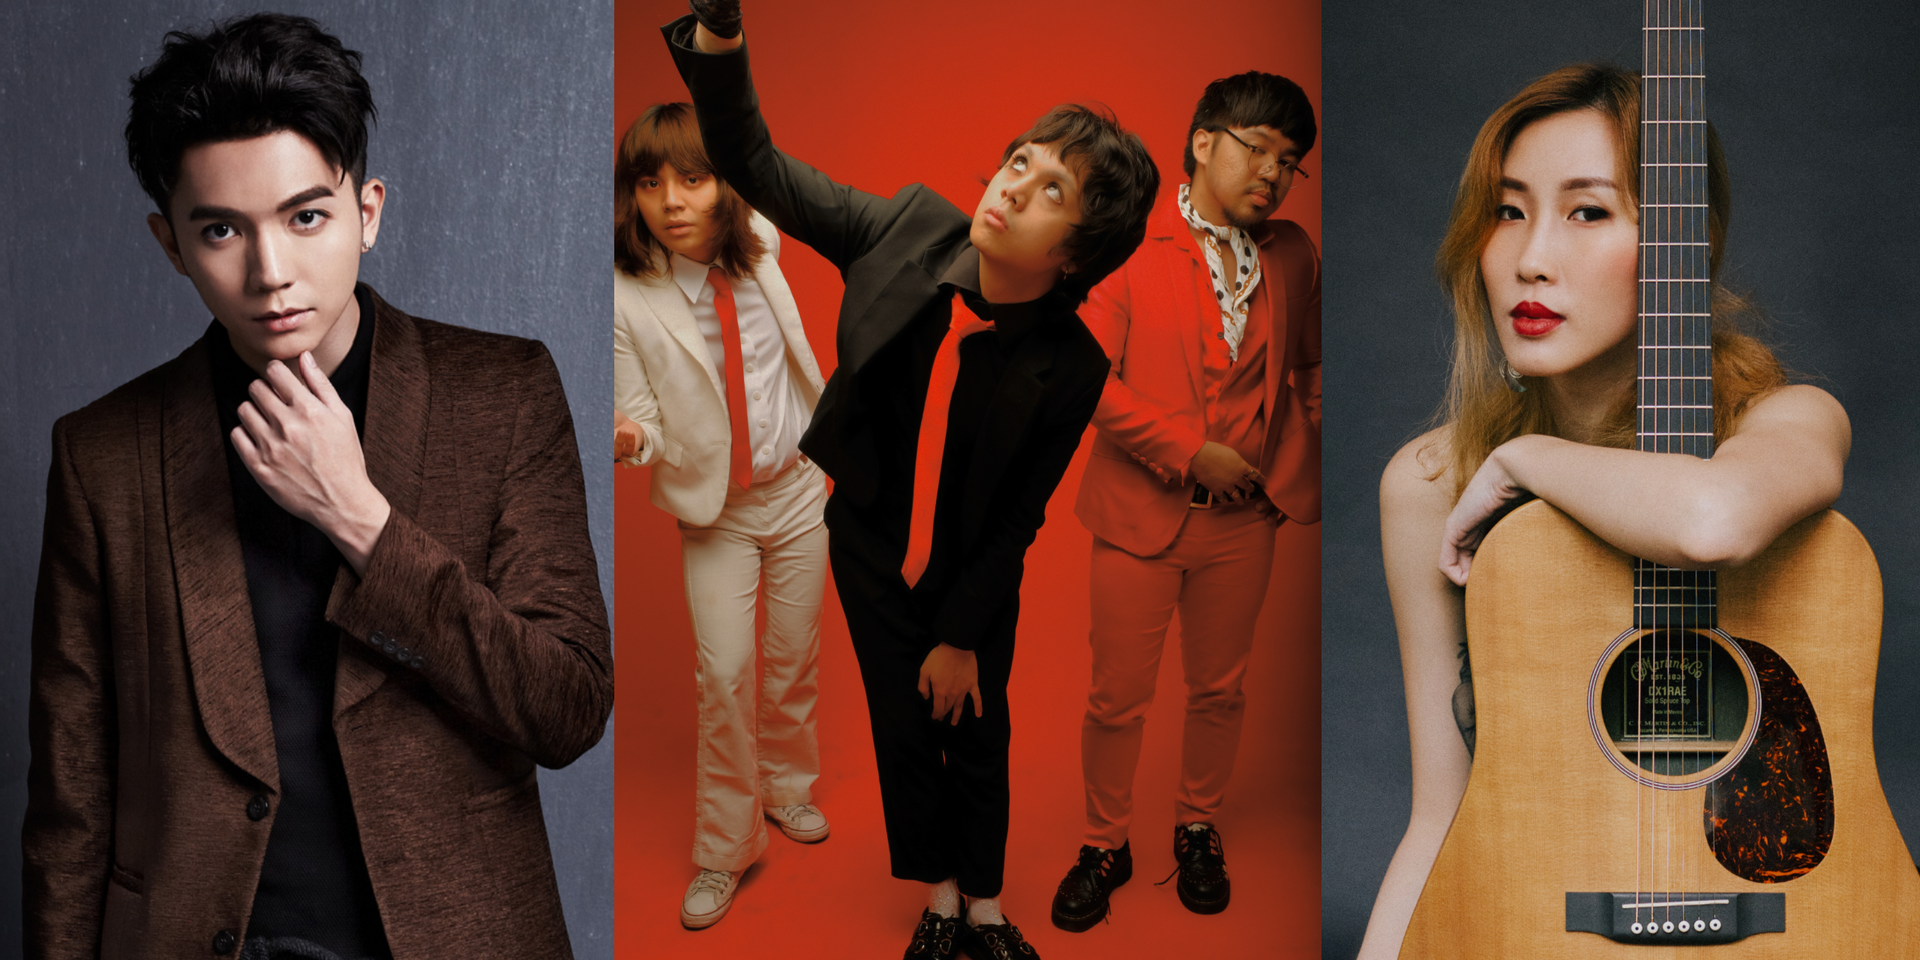 IV of Spades, Haoren and Adia Tay to perform at Marina Bay Sands' Open Stage this July